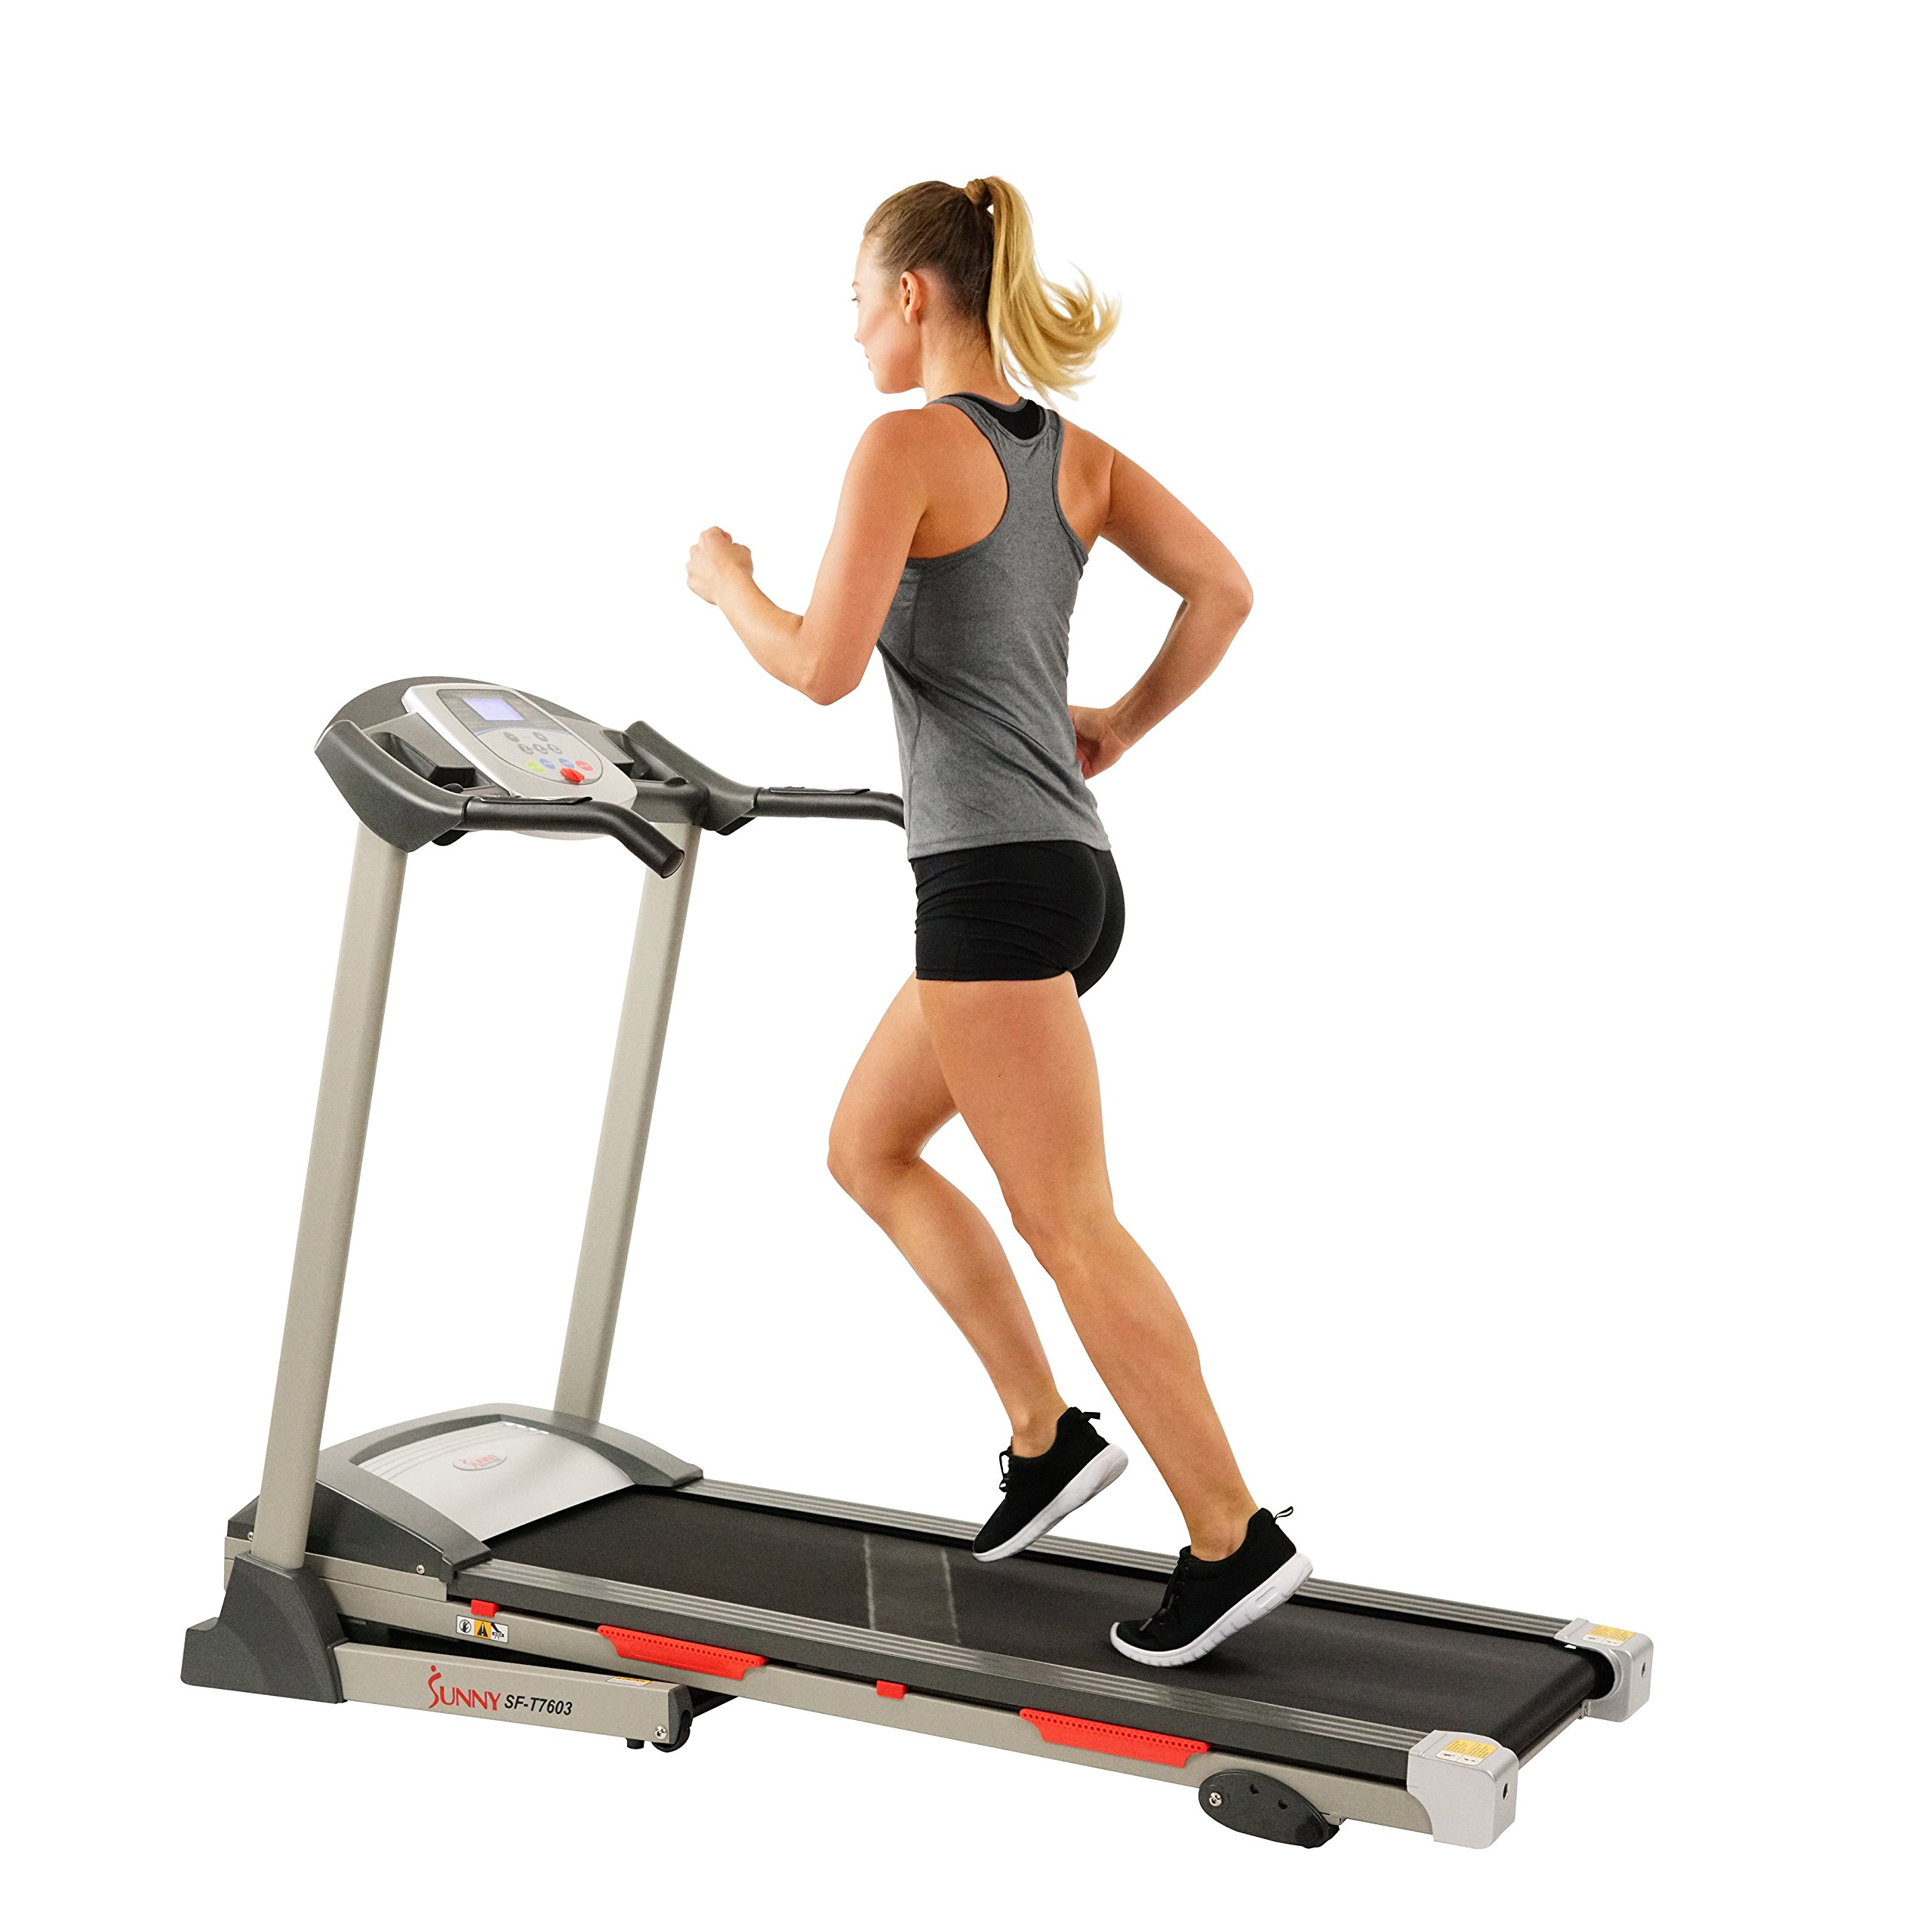 Sunny Health & Fitness Exercise Treadmills, Motorized Running Machine for Home with Folding, Easy Assembly, Sturdy, Portable and Space Saving - SF-T7603 by Sunny Health & Fitness